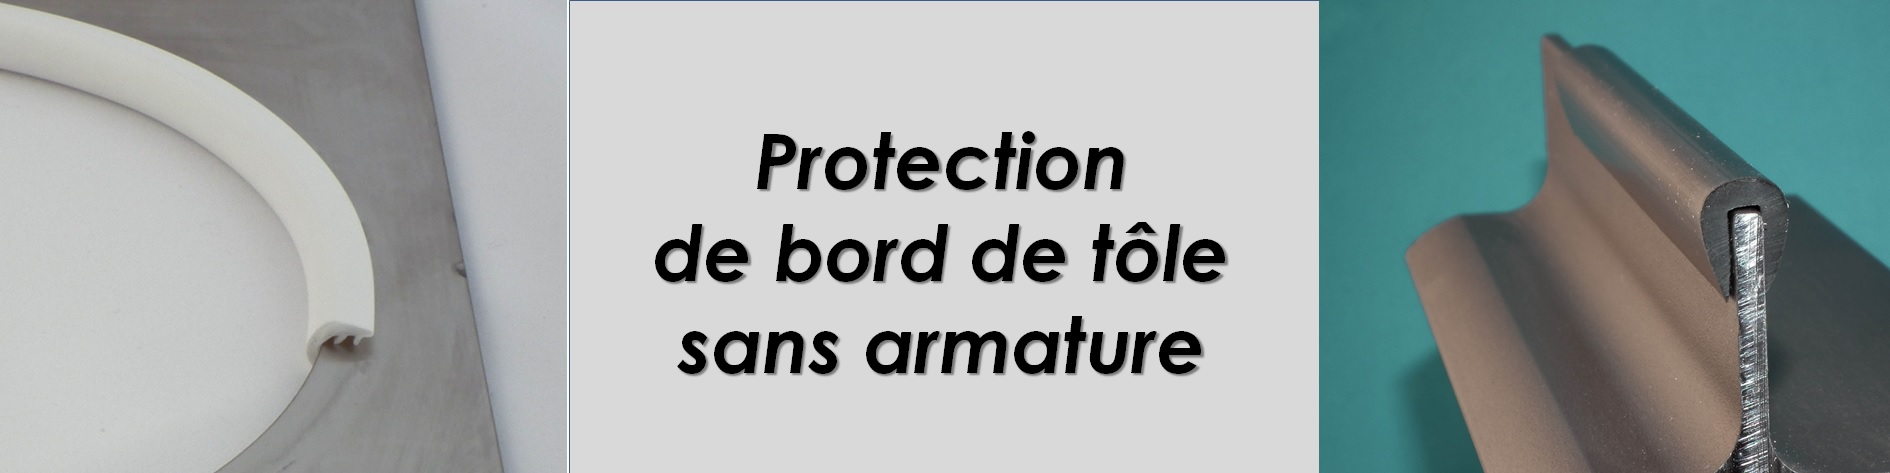 Joint U Protection de bord de tôle